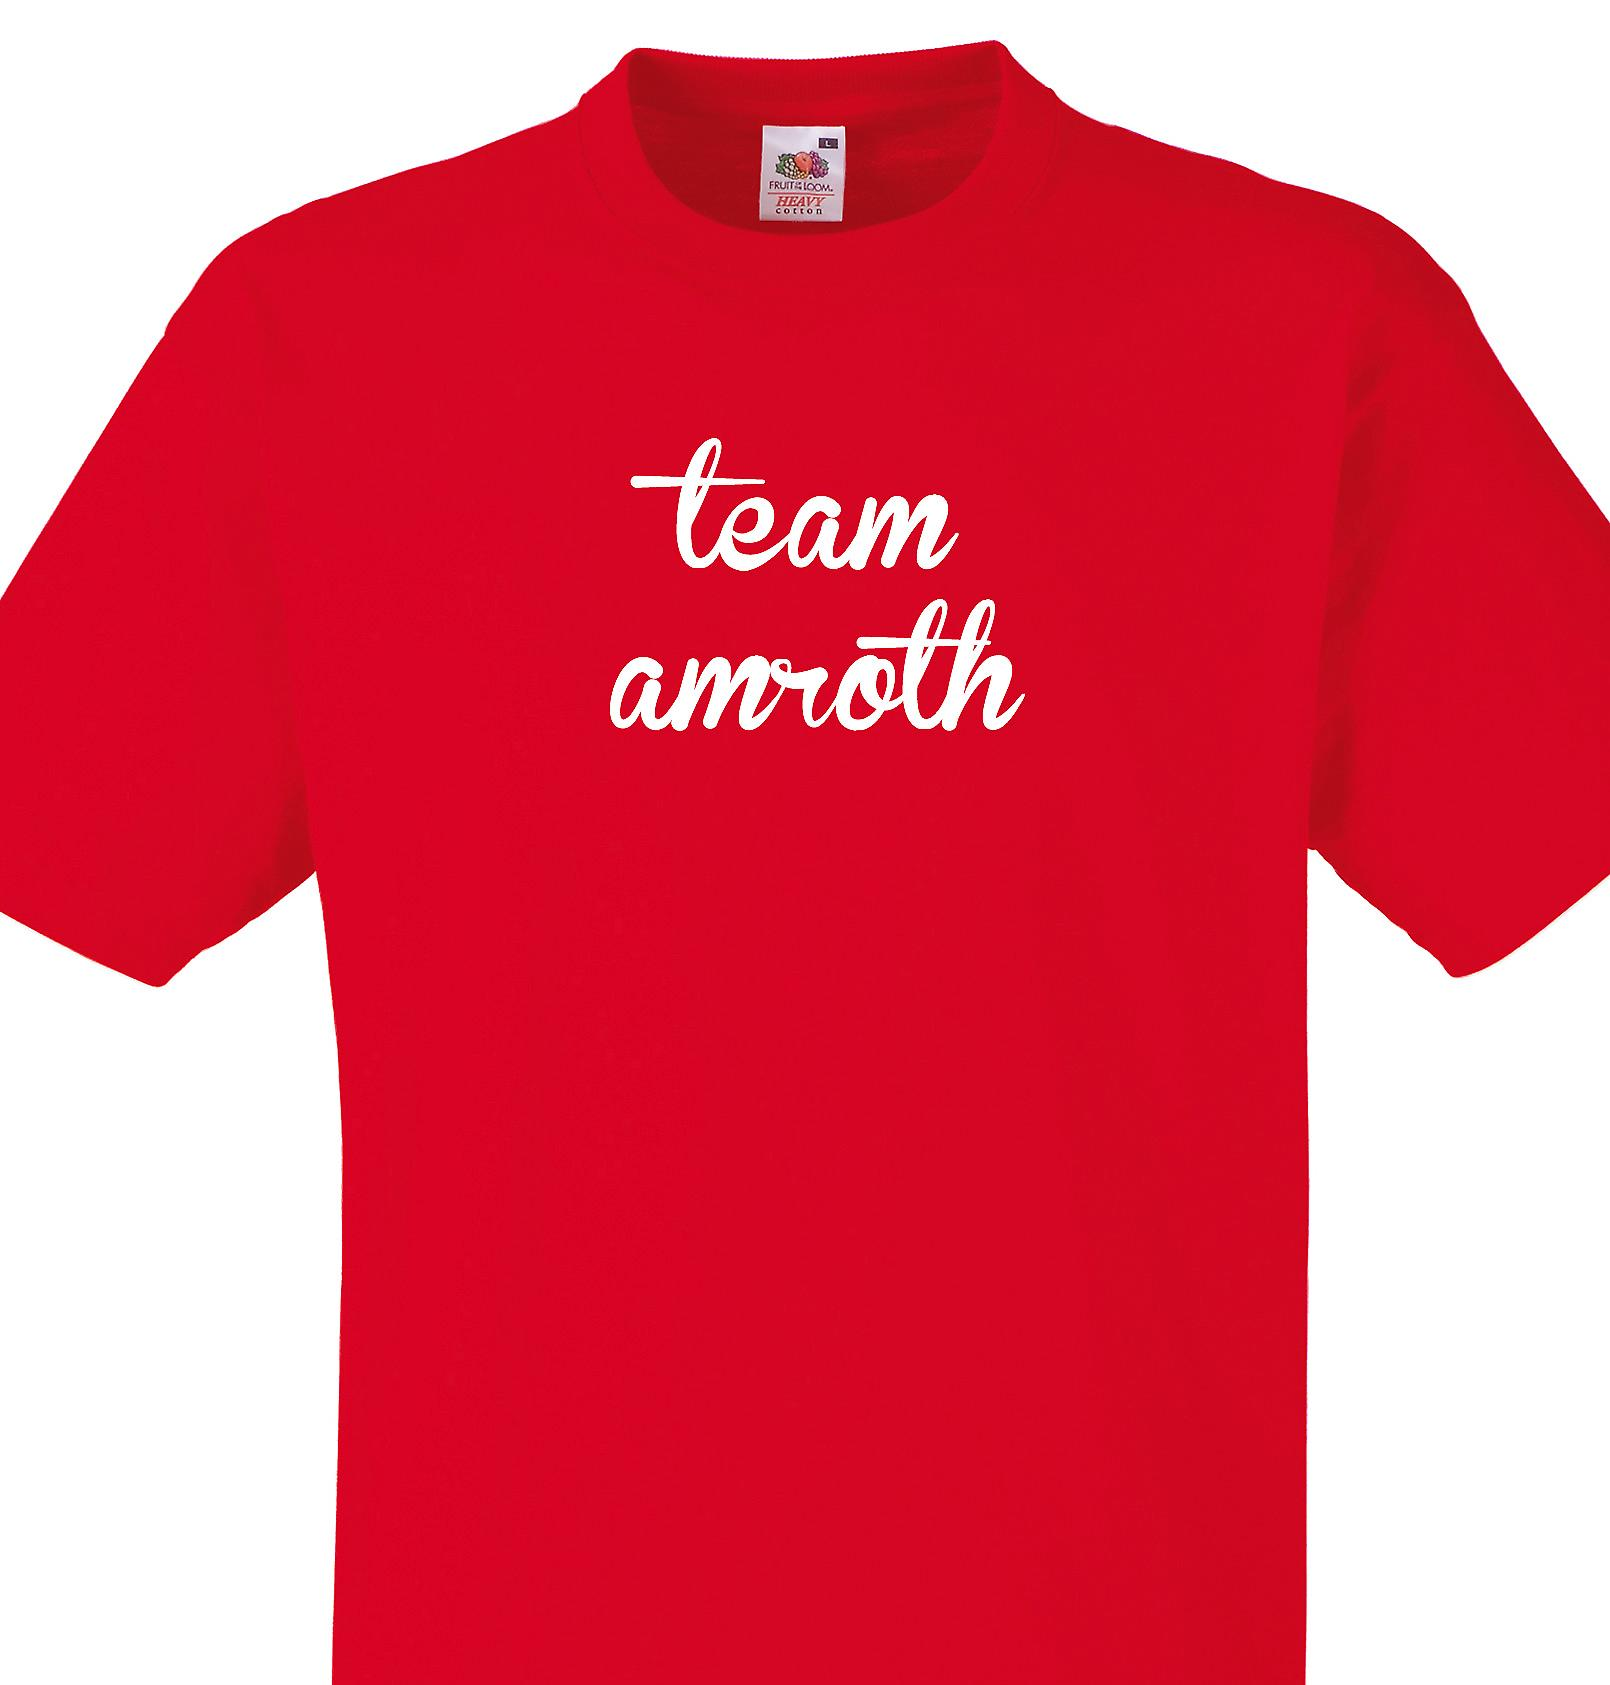 Team Amroth Red T shirt